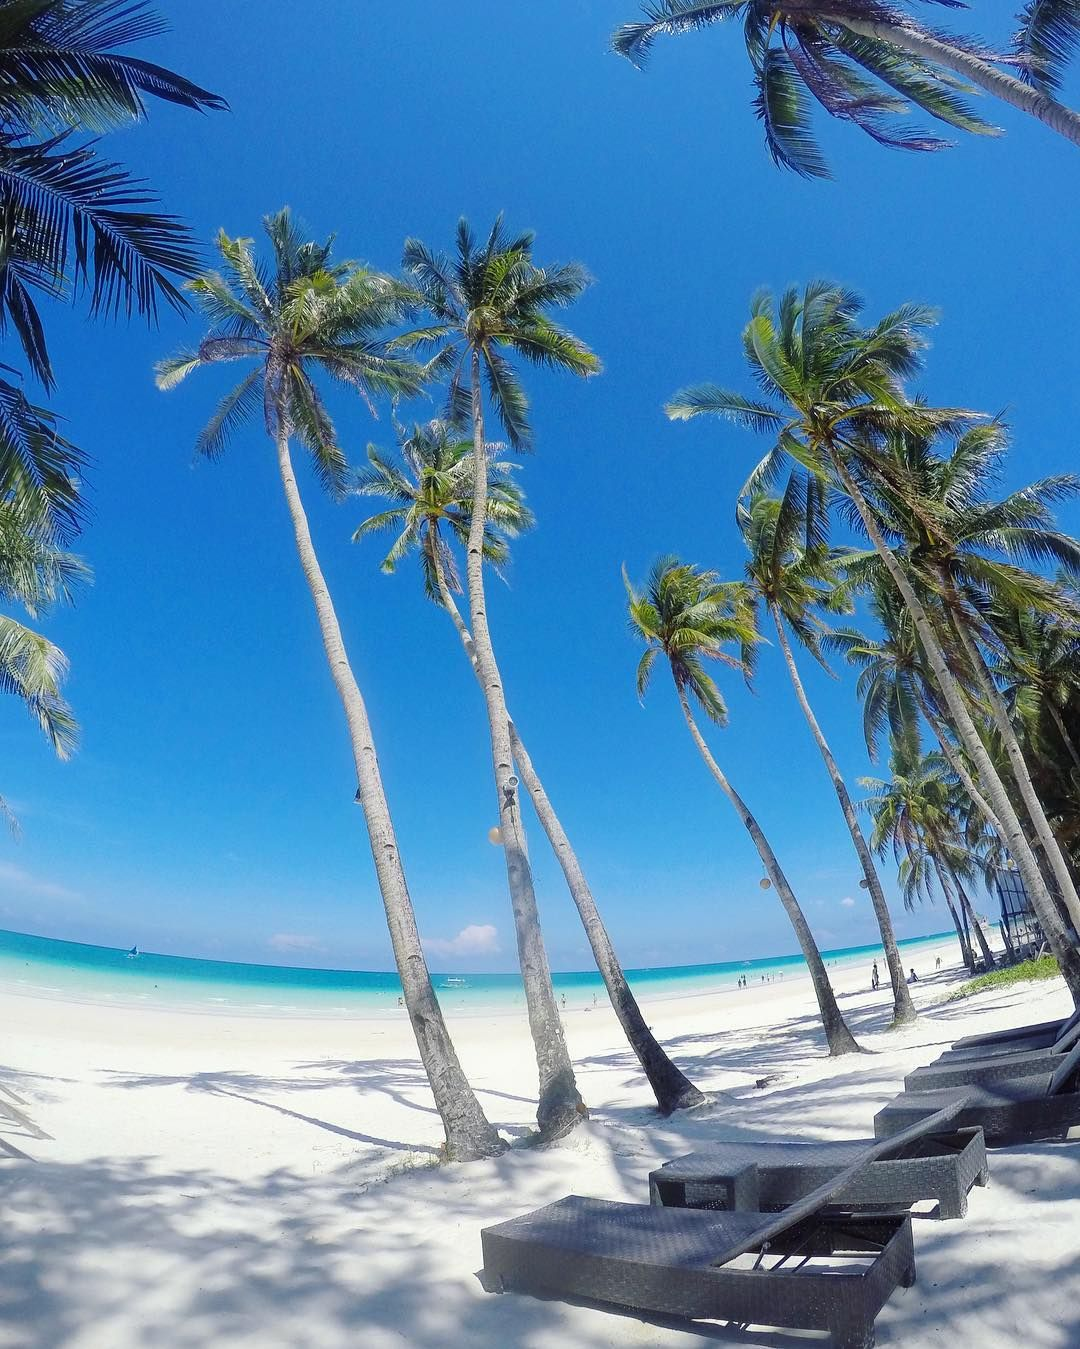 Boracay Beach: In One Of The Best Beaches In The World. I Want To Get